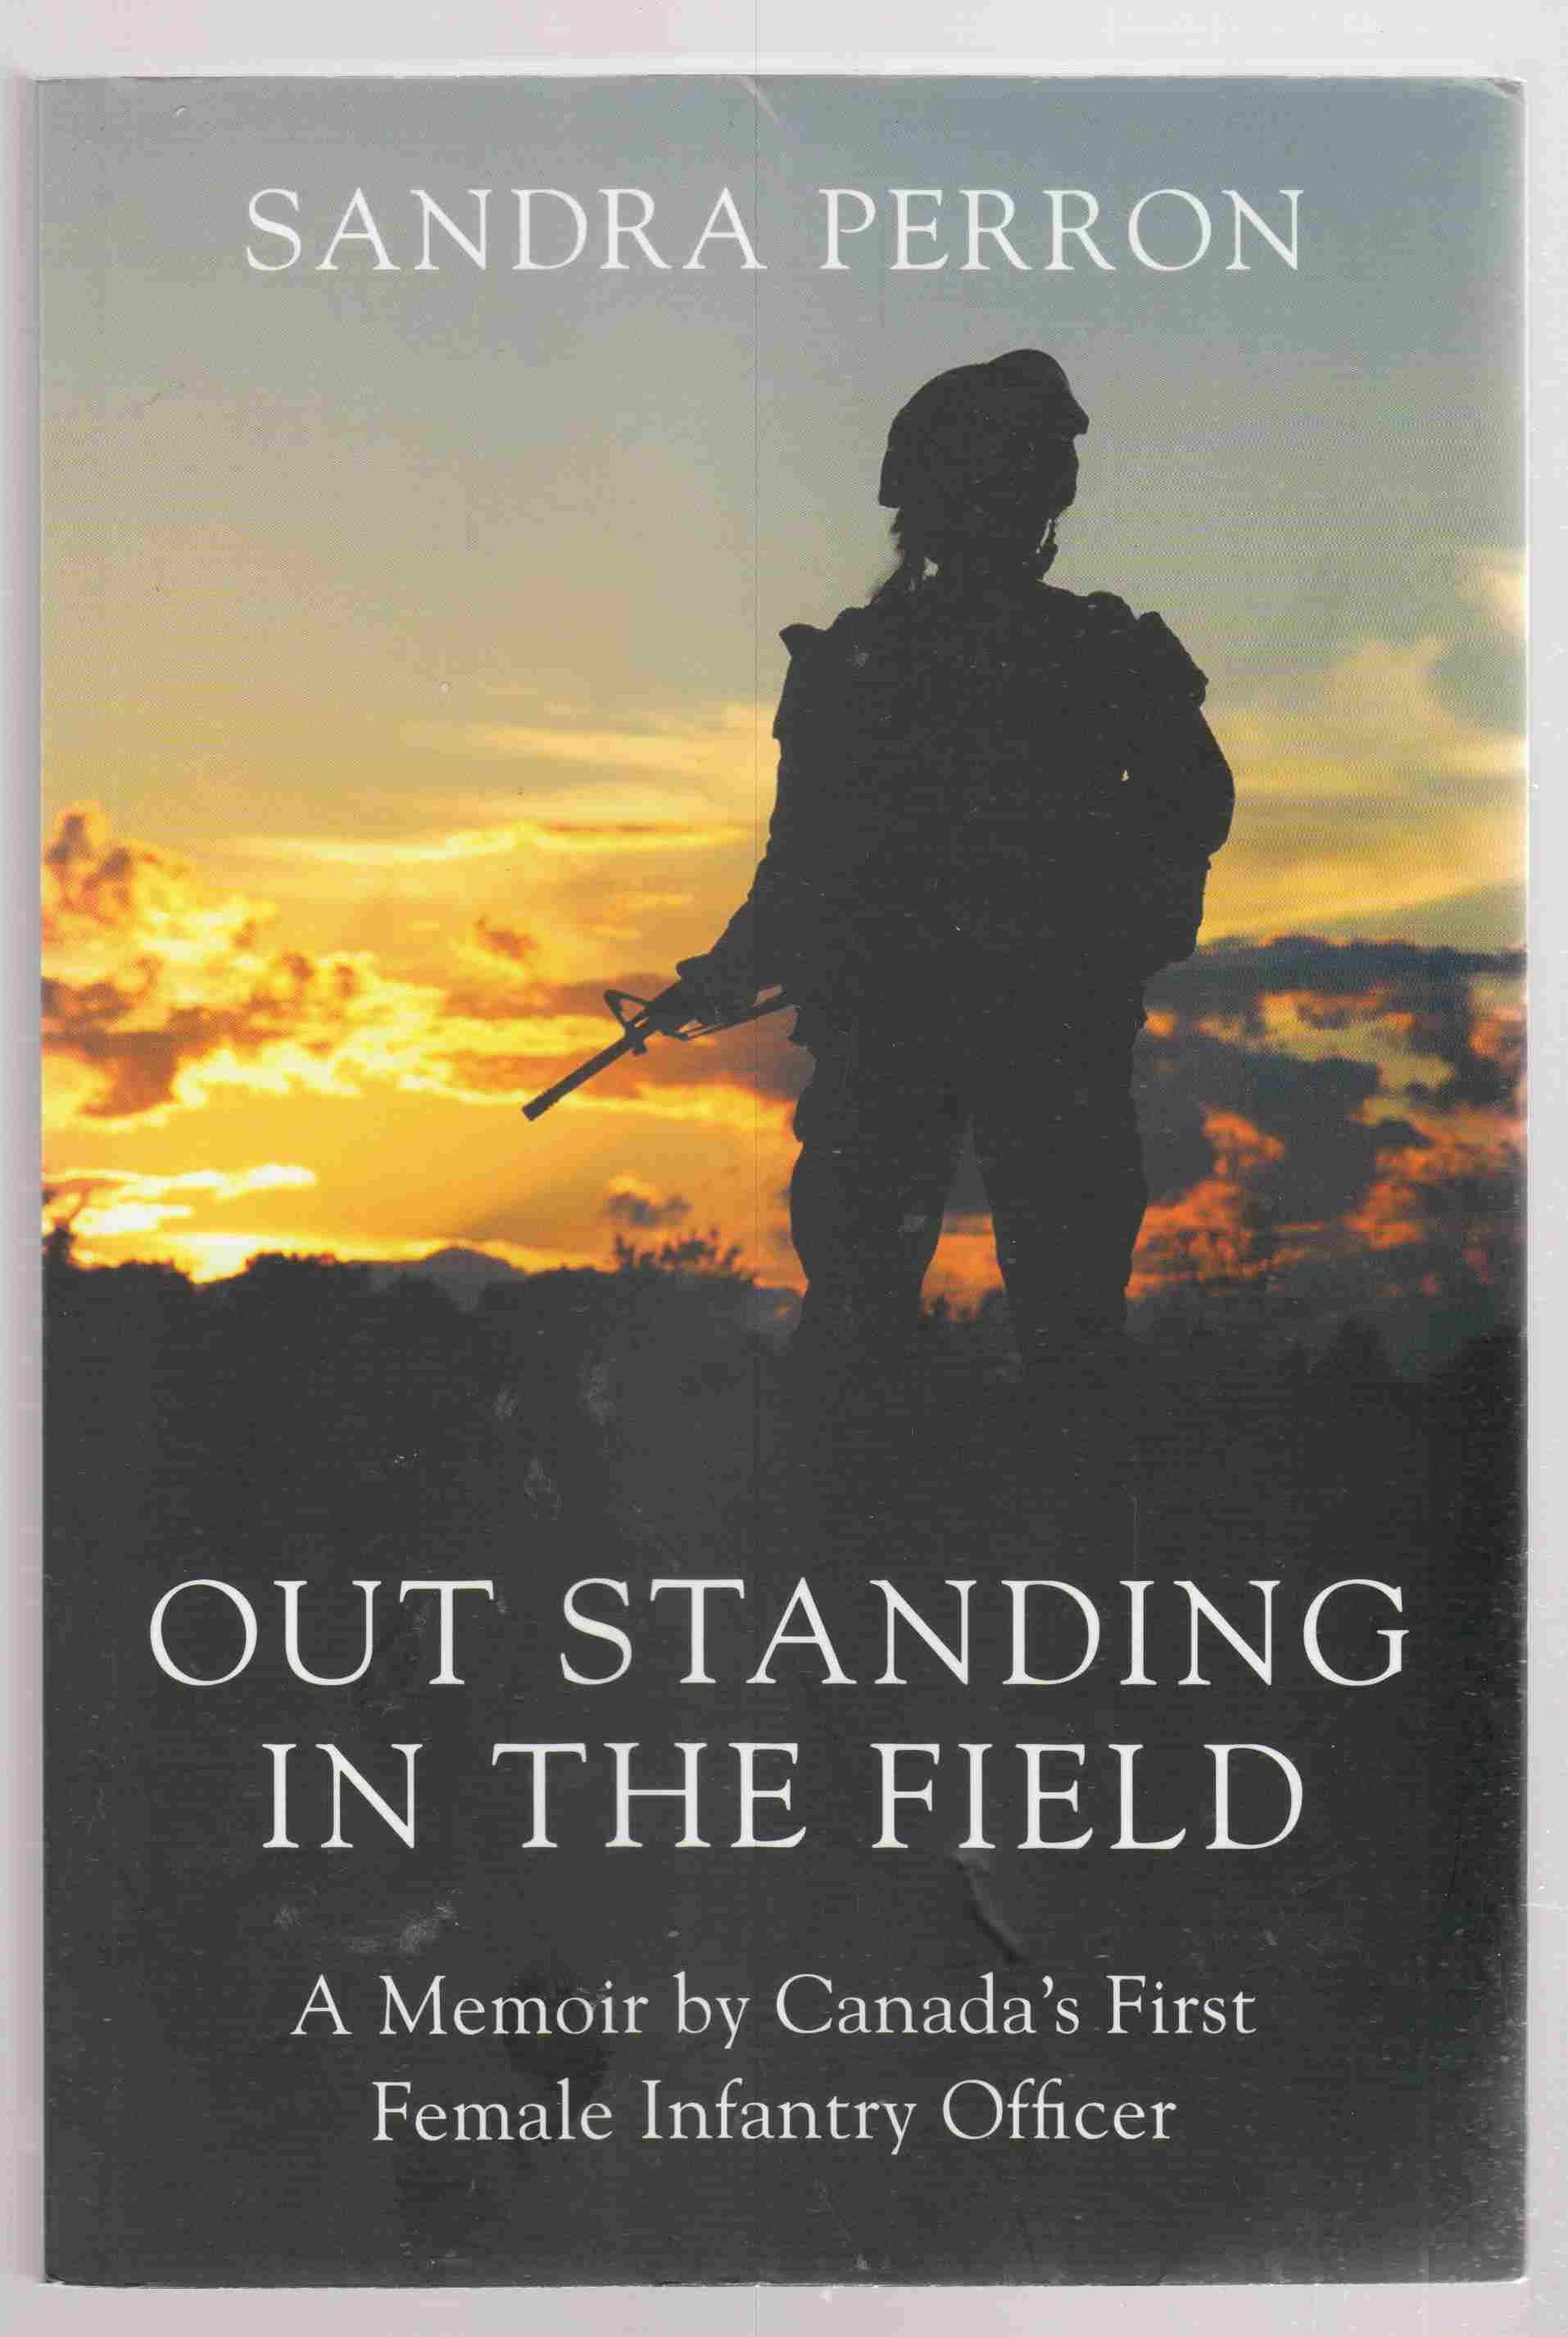 Image for Out Standing in the Field A Memoir by Canada's First Infantry Officer